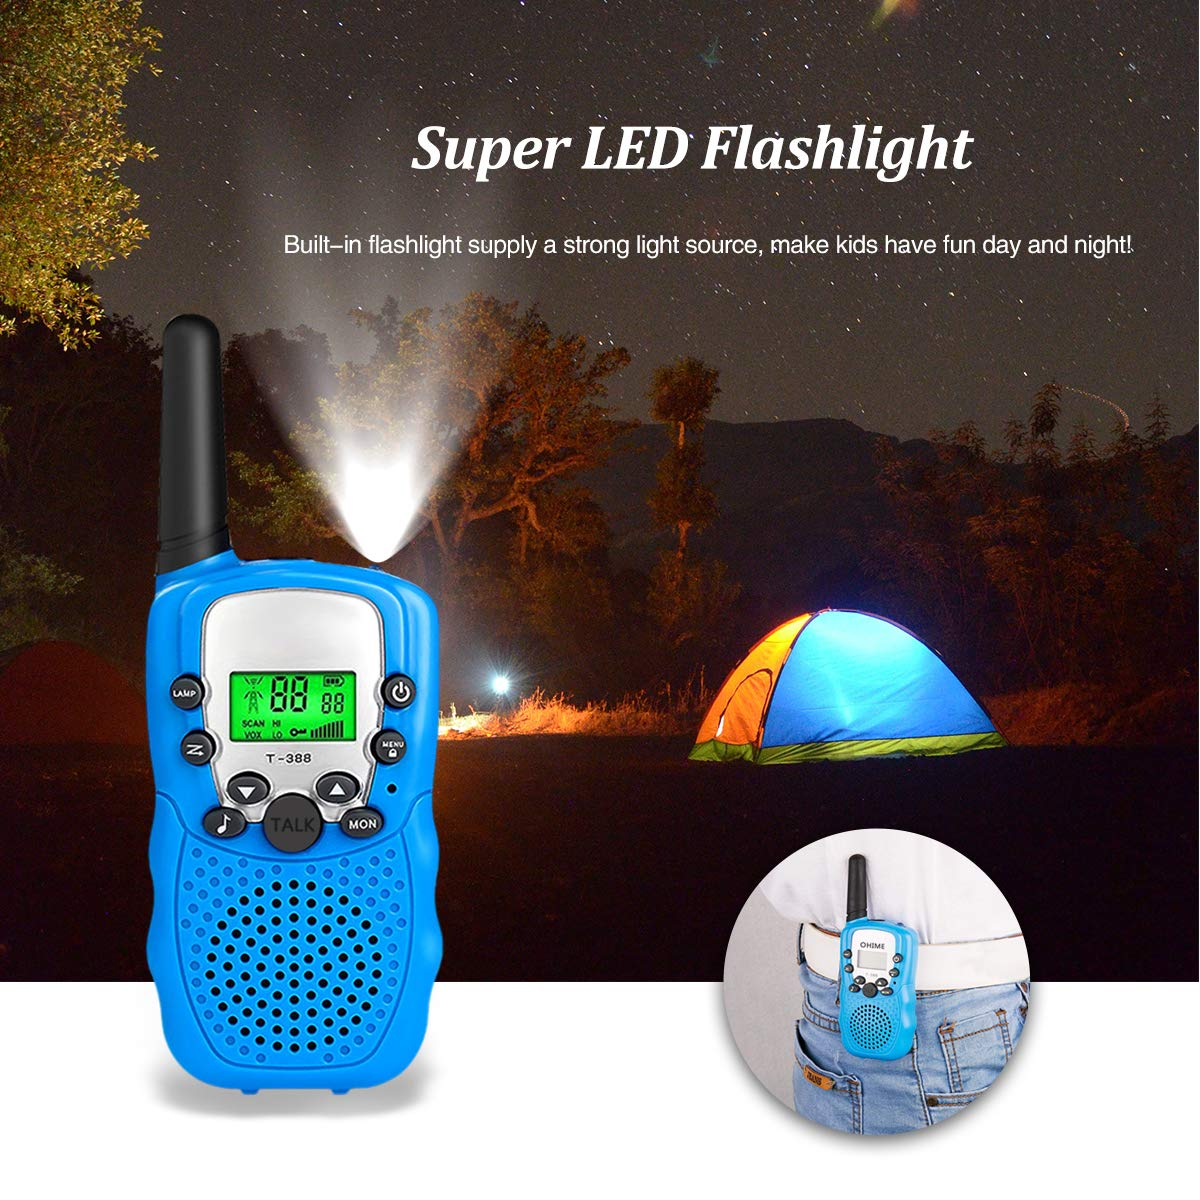 Outdoor Toys for 5-10 Year Old Boys Girls Pussan Kids Walkie Talkies 3 Pack Long Range 2 Miles 22 Channels Kids Camping Outside Summer Games Walky Talky for Children Gifts by Pussan (Image #6)